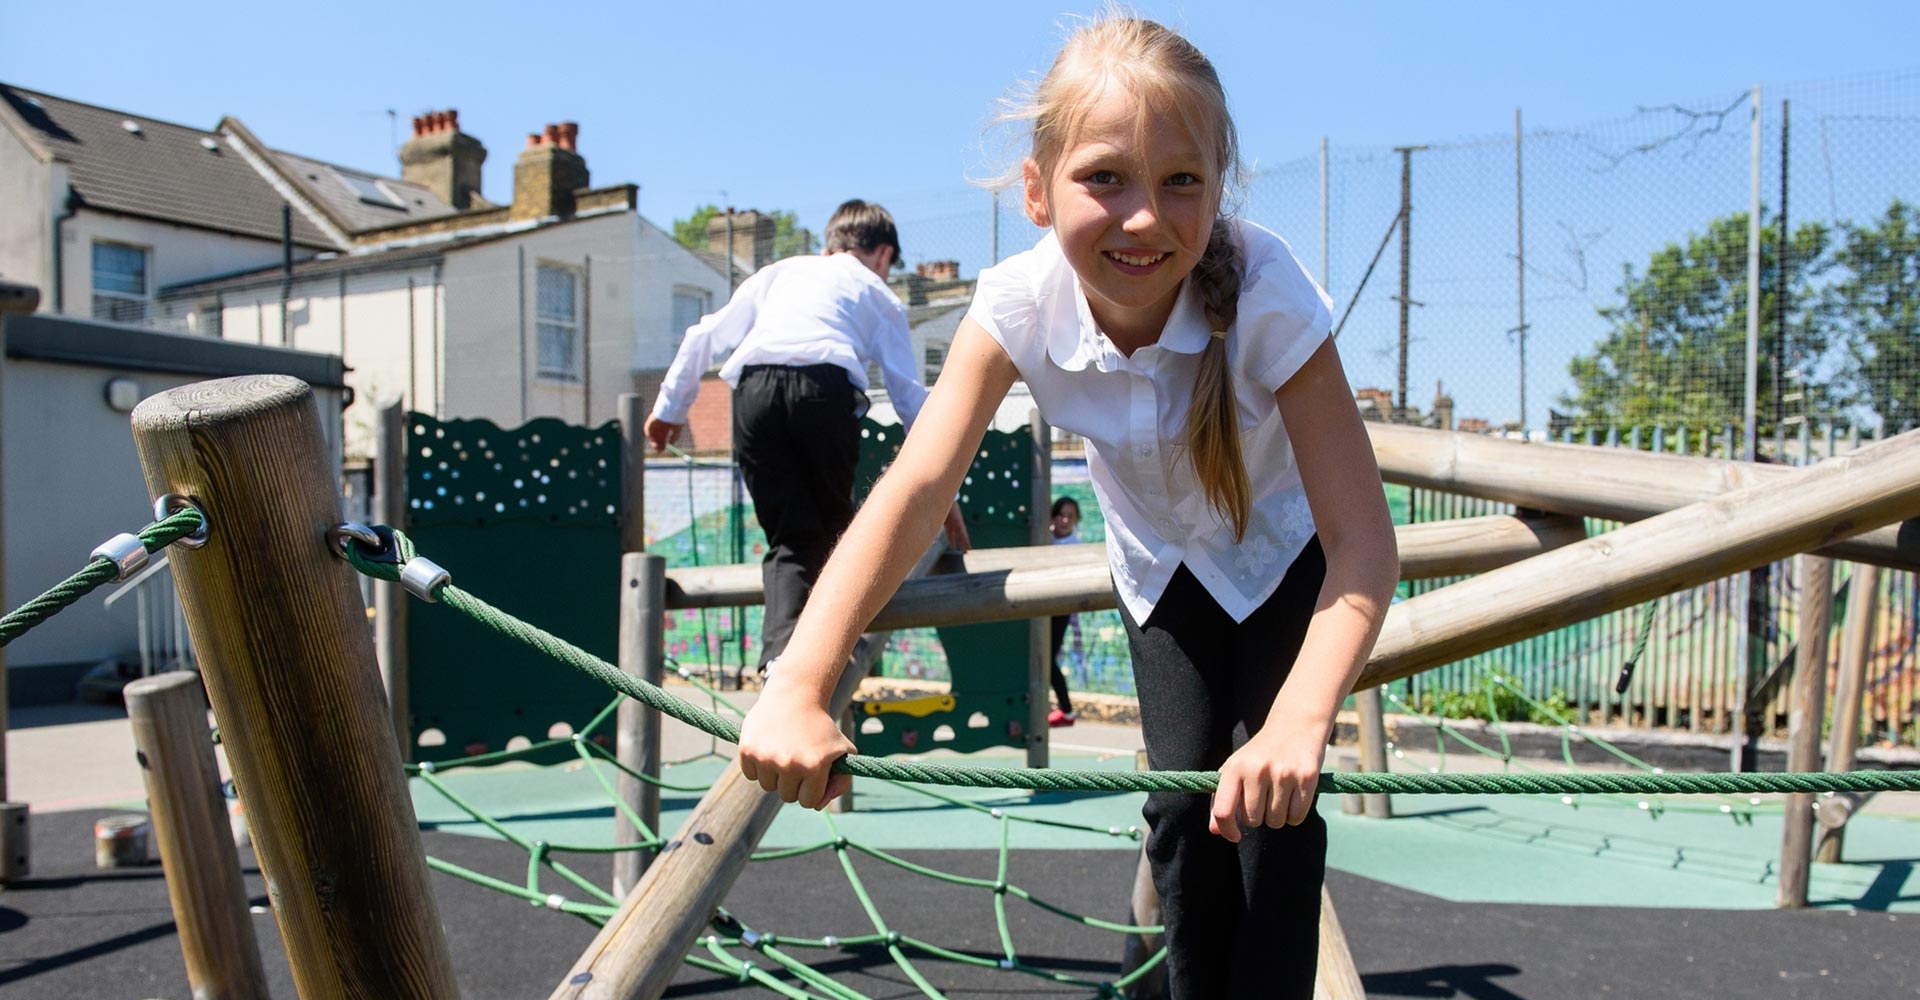 Life at Upton Cross Primary School